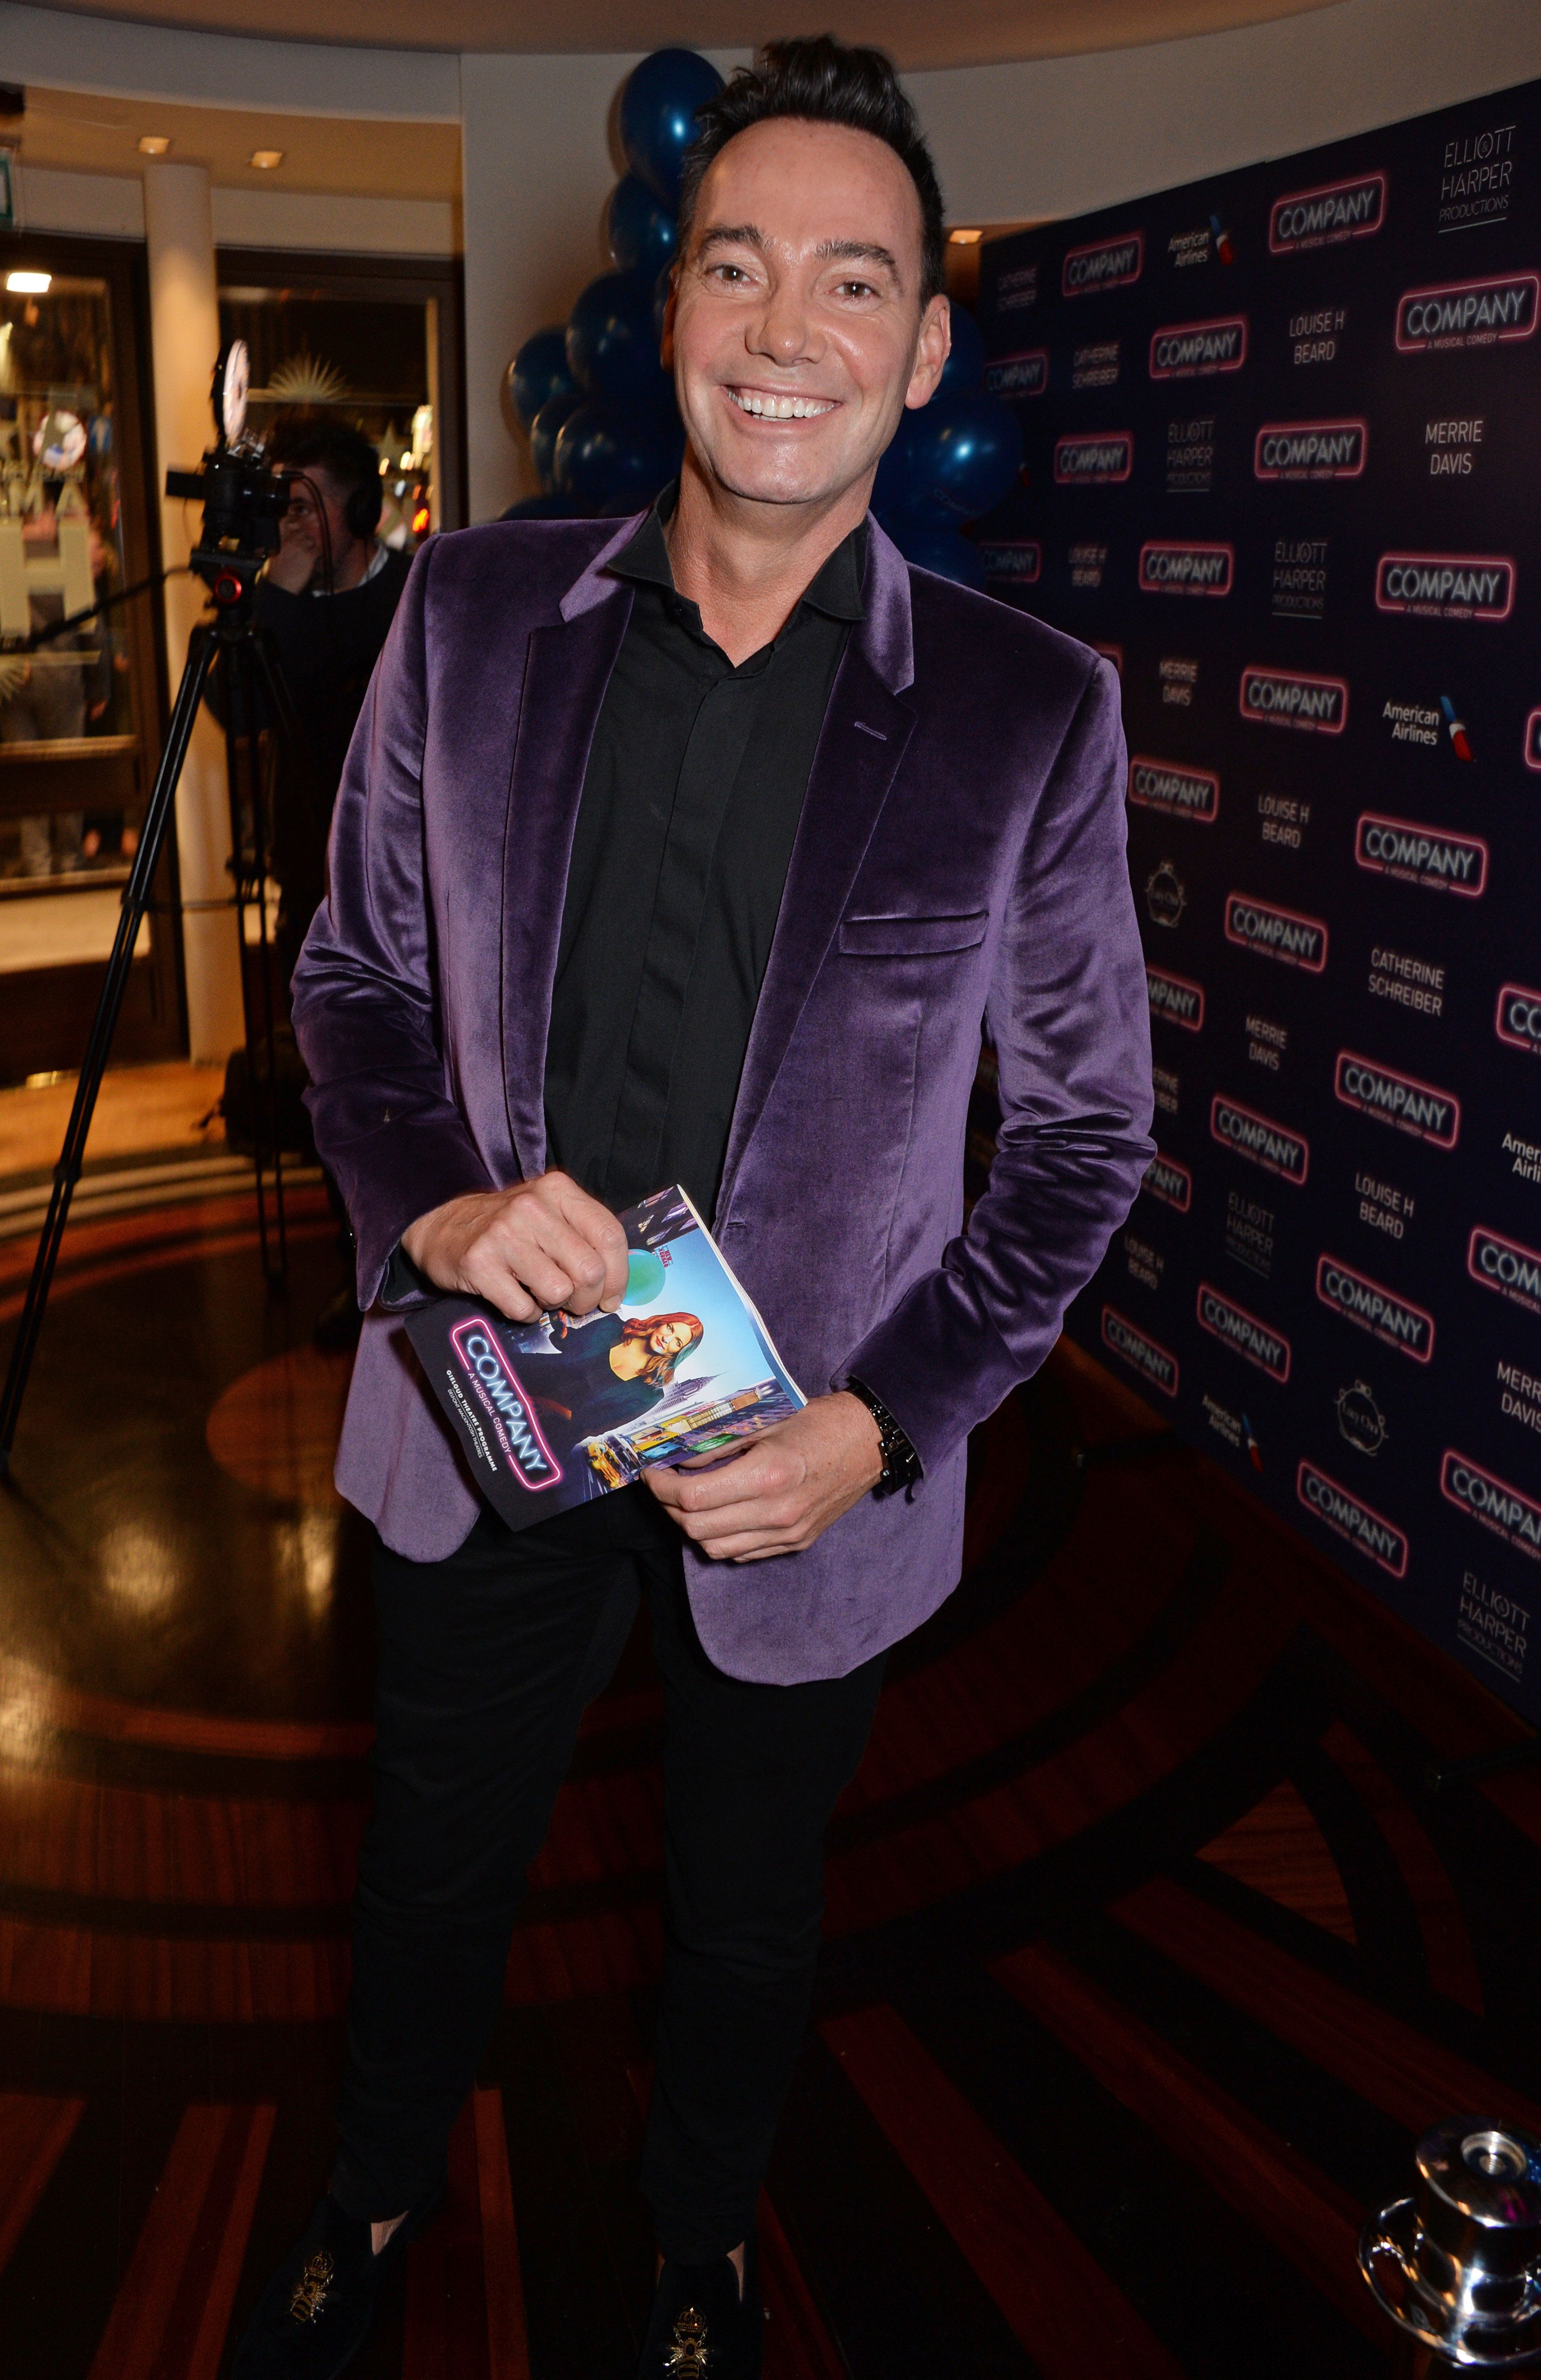 STRICTLY: Craig Revel Horwood Has Some Choice Words For Critics Of His 'Strictly'